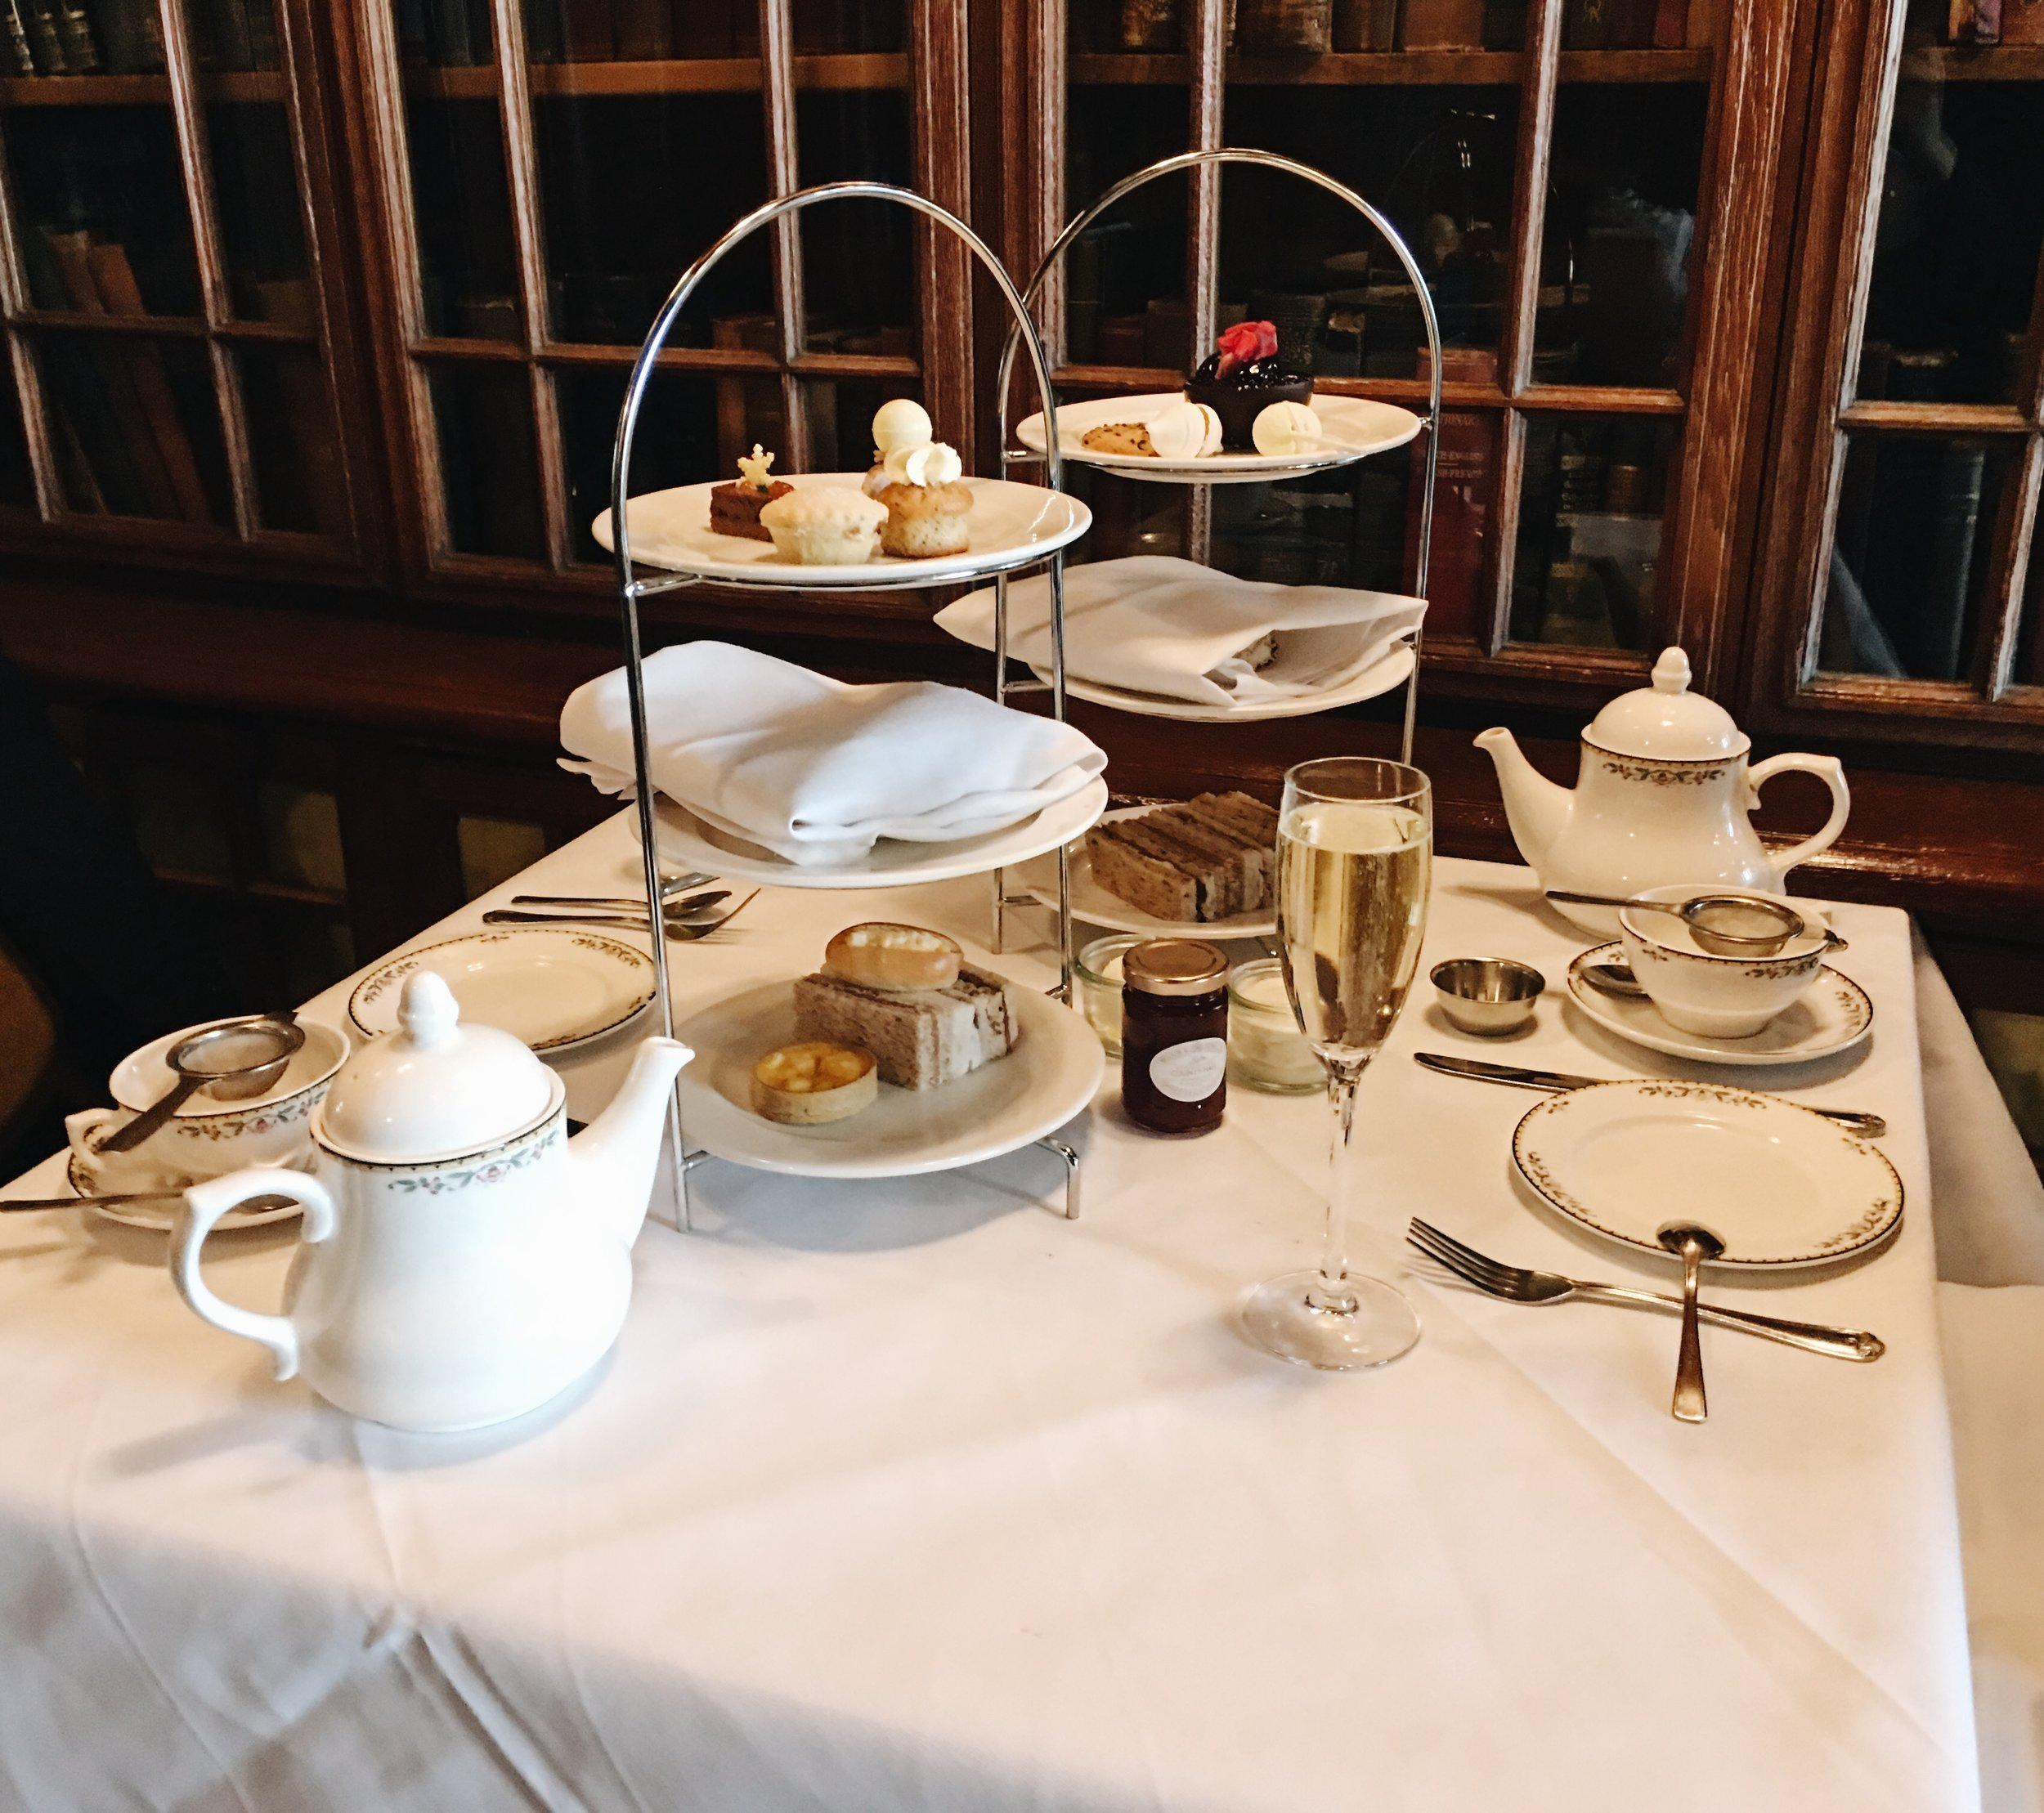 Tea for two at the Library Lounge, London. The spread on the left is the traditional version, and the one on the right is dairy-free.